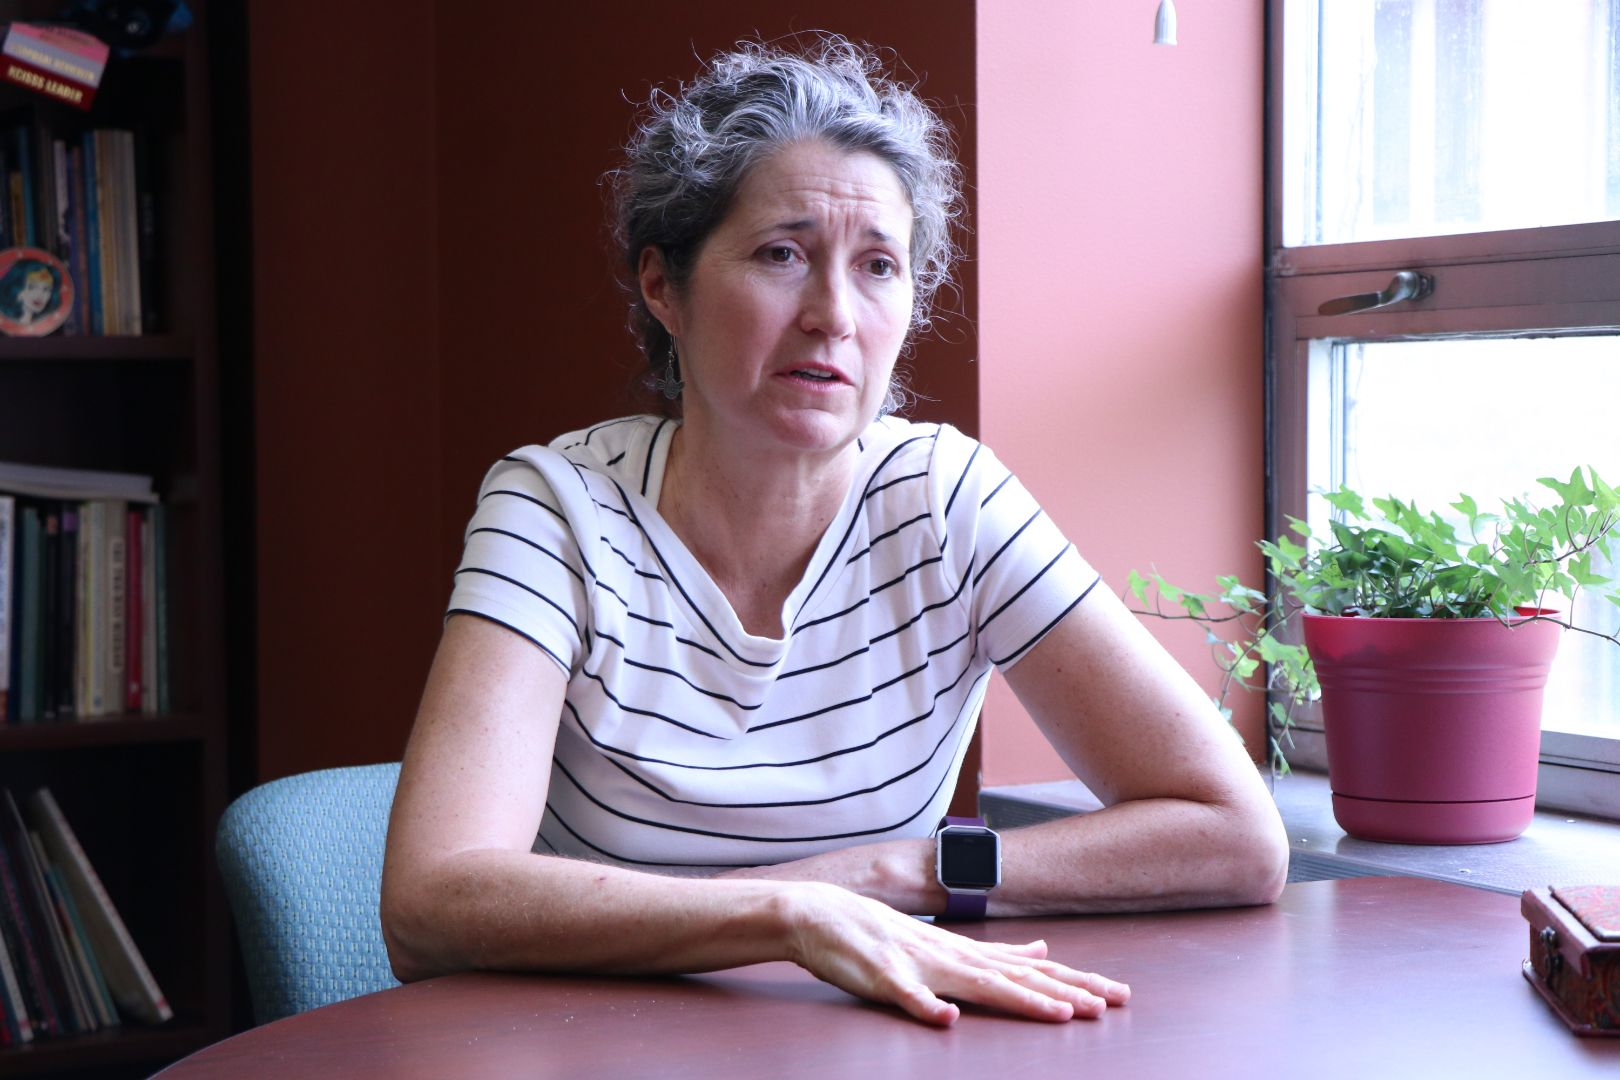 Photo of OISS director Krista McCallum Beatty sitting in her office speaking to a colleague